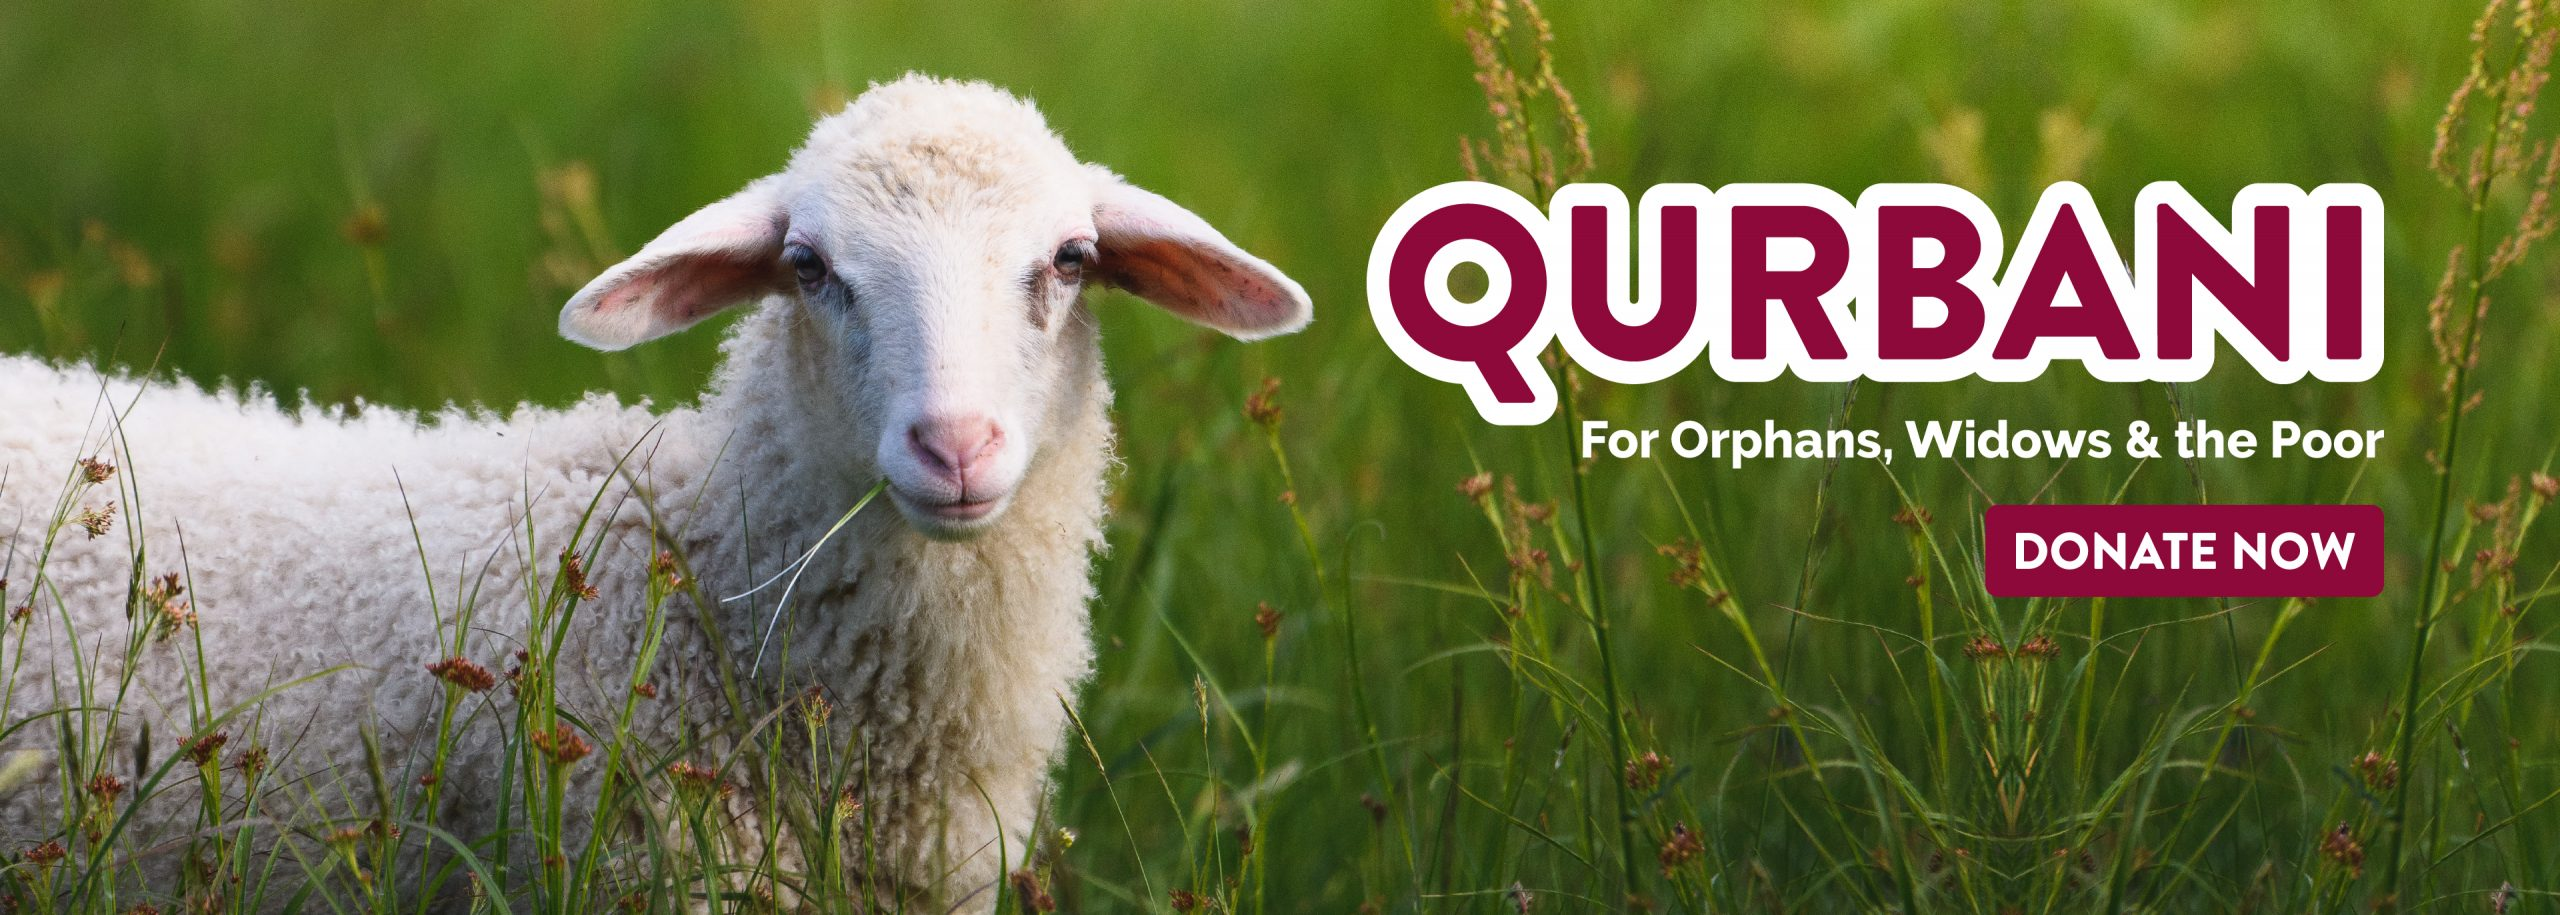 Qurbani-web-banner-Home